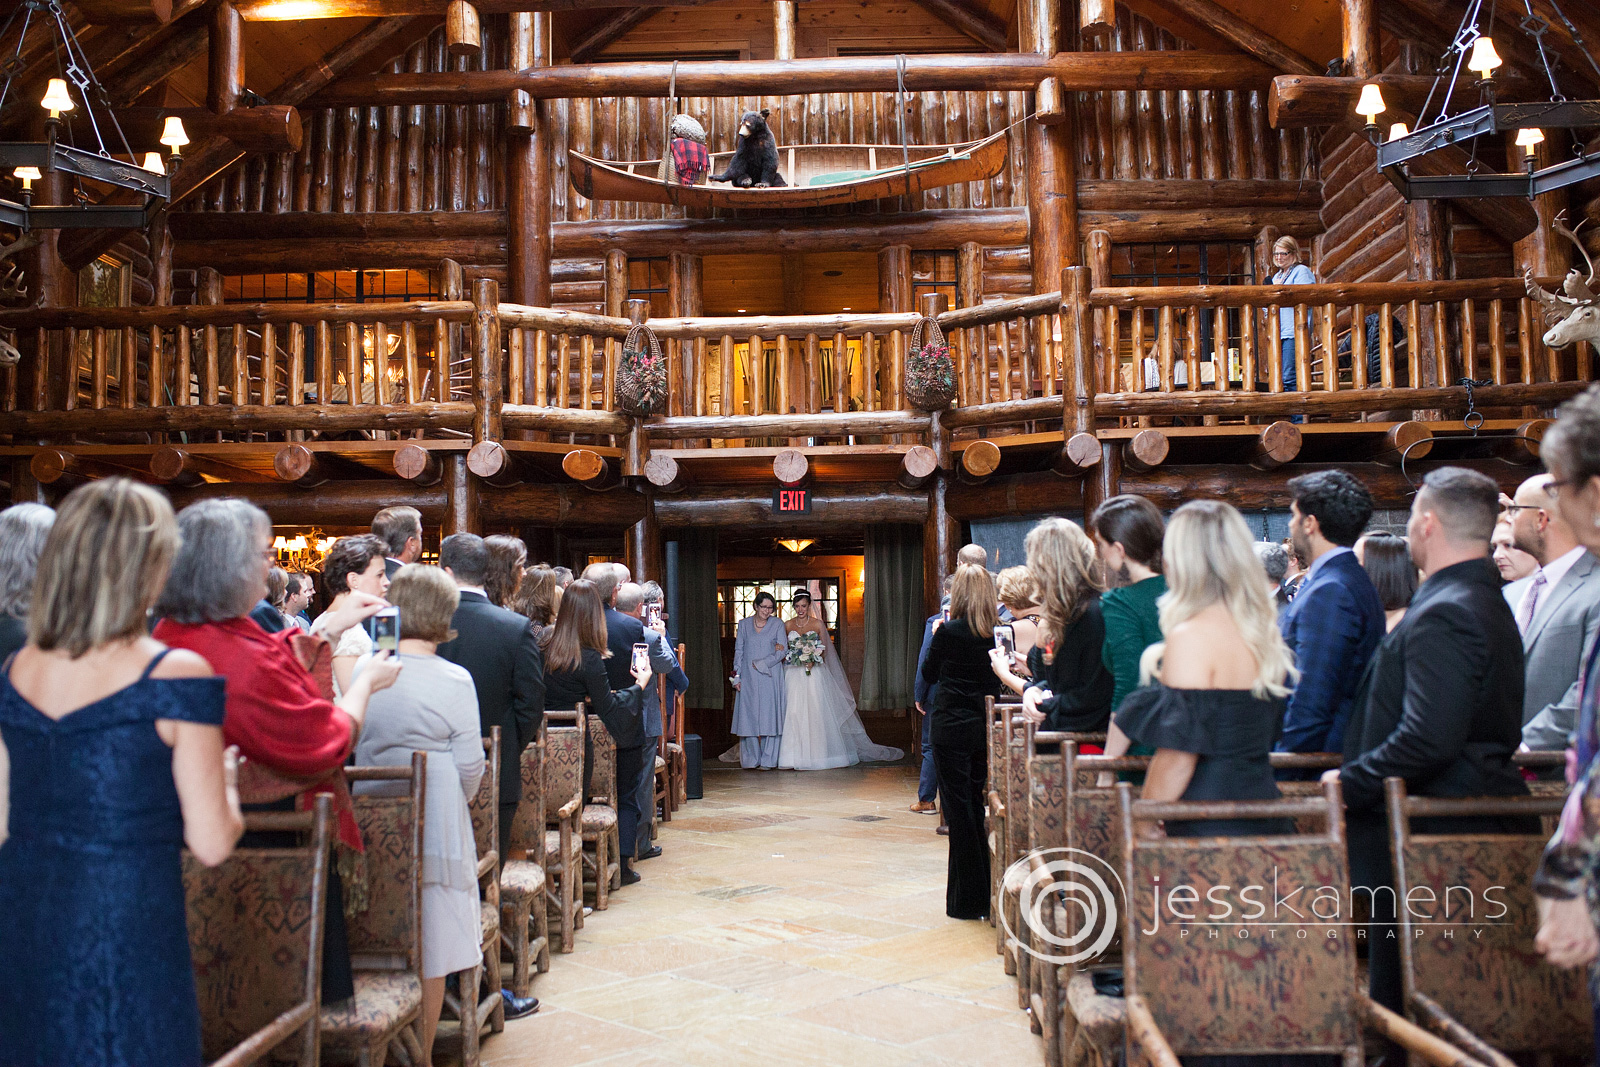 whiteface lodge kanu room in lake placid new york where the bride walks down the aisle